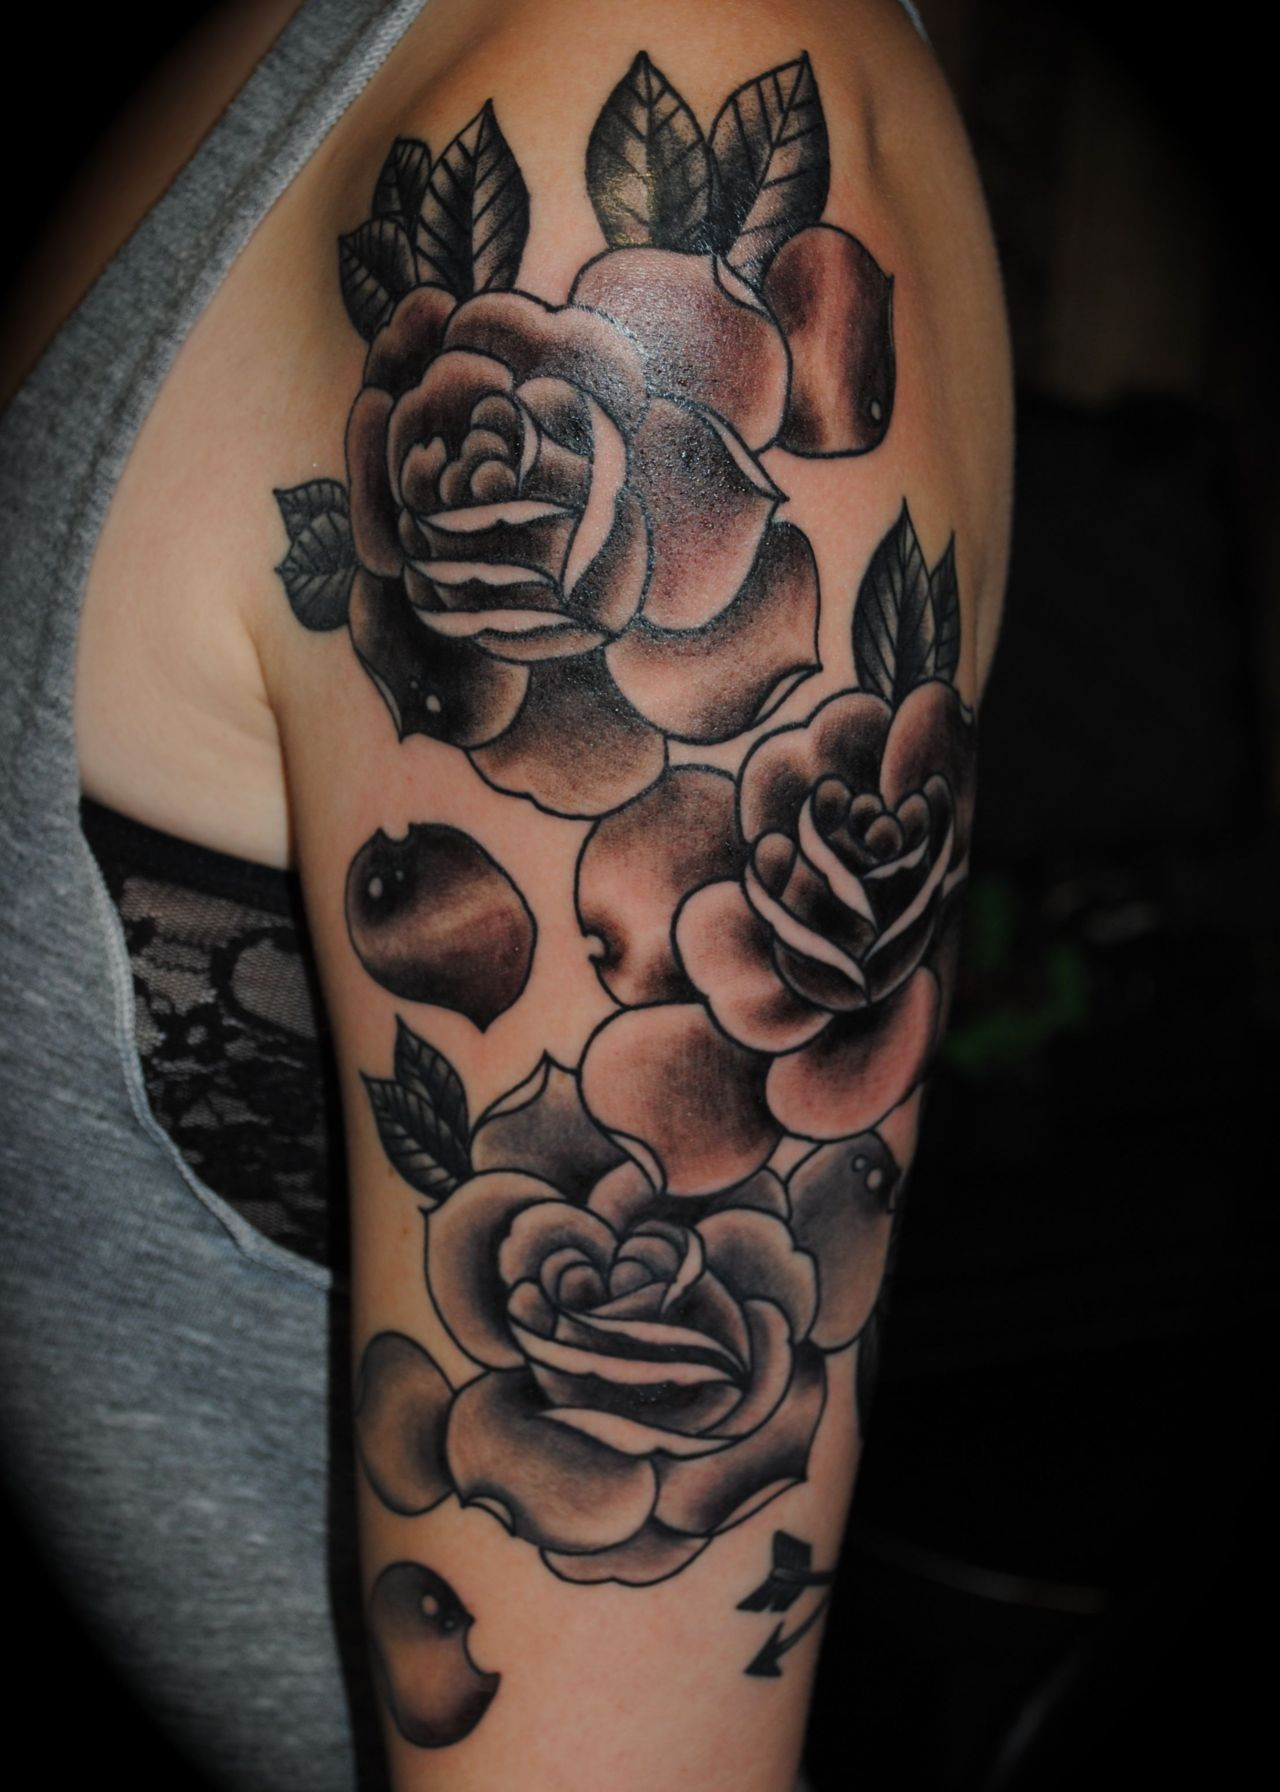 25  best ideas about Full arm tattoos on Pinterest   Mandala likewise I like  Each item symbolizing something personal… instead of bee in addition hibiscus flower sleeve tattoo    Tattoo   Pinterest   Sleeve as well  likewise black and grey rose tattoo sleeve   Google Search   World Of as well 25  best ideas about cover up tattoos on Pinterest likewise Meaningful Tattoos Cover Up Tattoo Ideas   id Styles likewise 25  best Patriotic Tattoos ideas on Pinterest   American flag additionally  further Flower Tattoo Cover UPS   Cover up Flower   Tattoo Artists org additionally 25  best ideas about Forearm sleeve tattoos on Pinterest   Forearm. on tattoo sleeves arm covers women